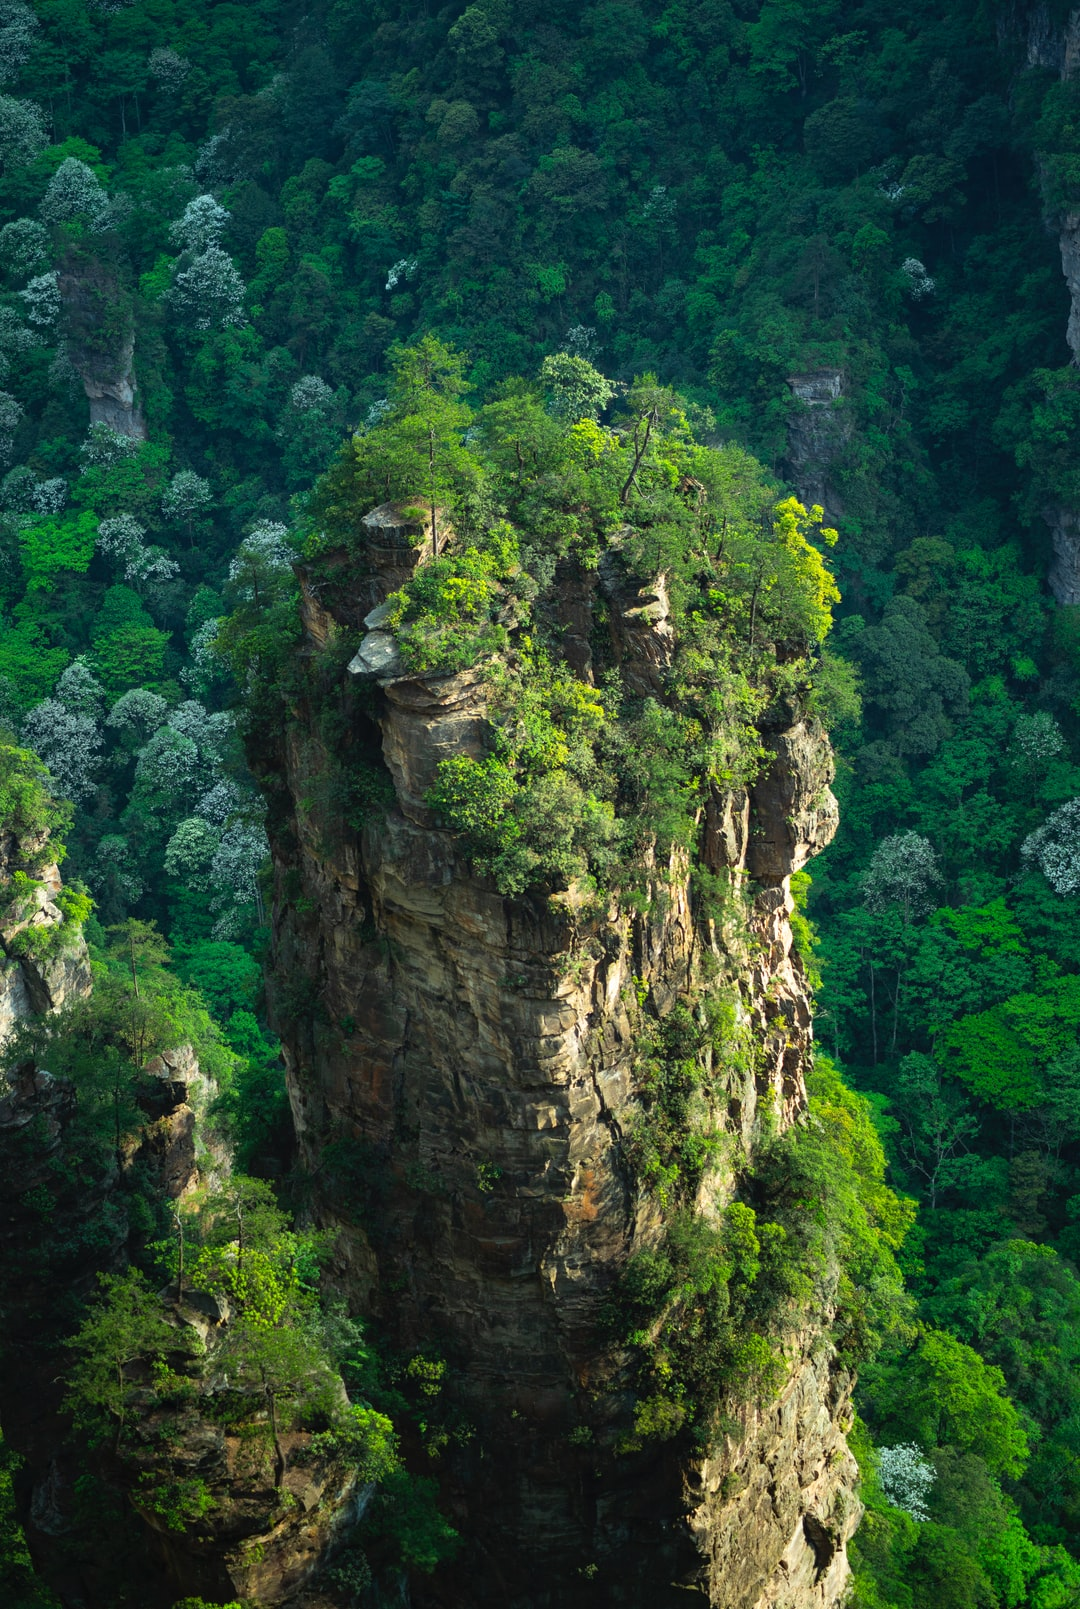 The Zhangjiajie National Park in China really looks a lot like Pandora. They said that James Cameron got inspired from this park when creating Avatar.